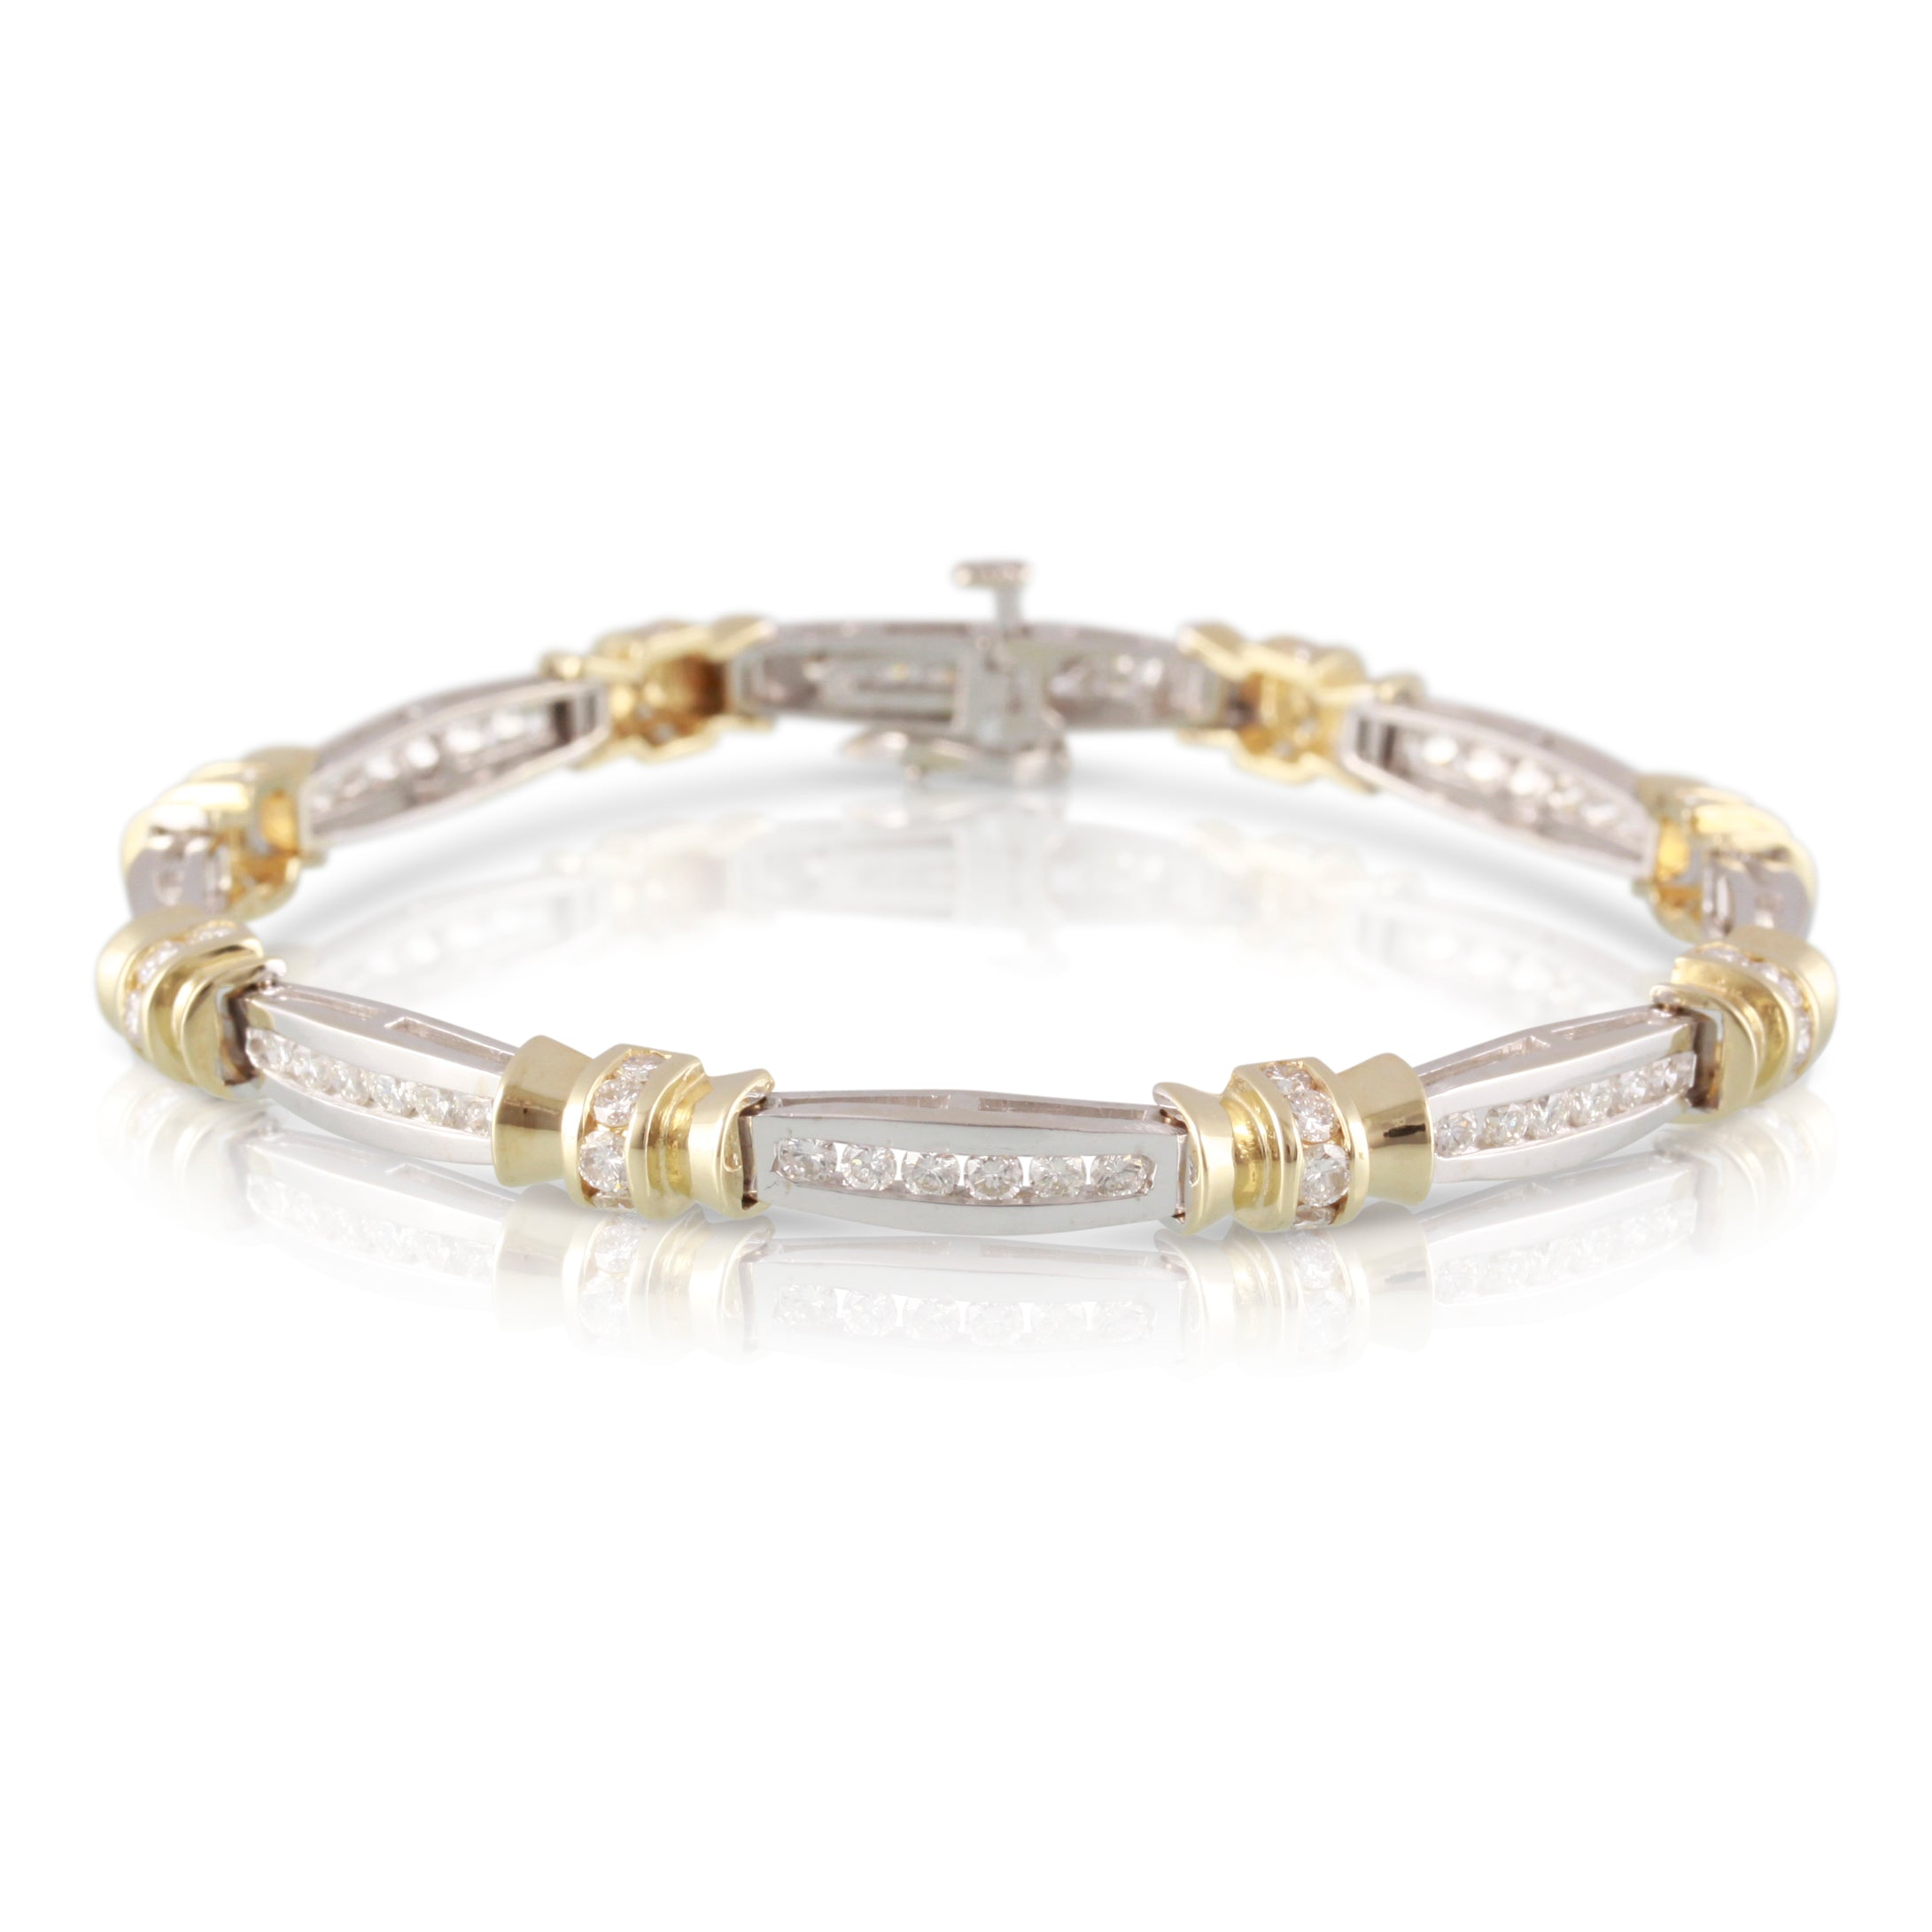 Two Tone Gold and Diamond Bracelet | The Nathaniel